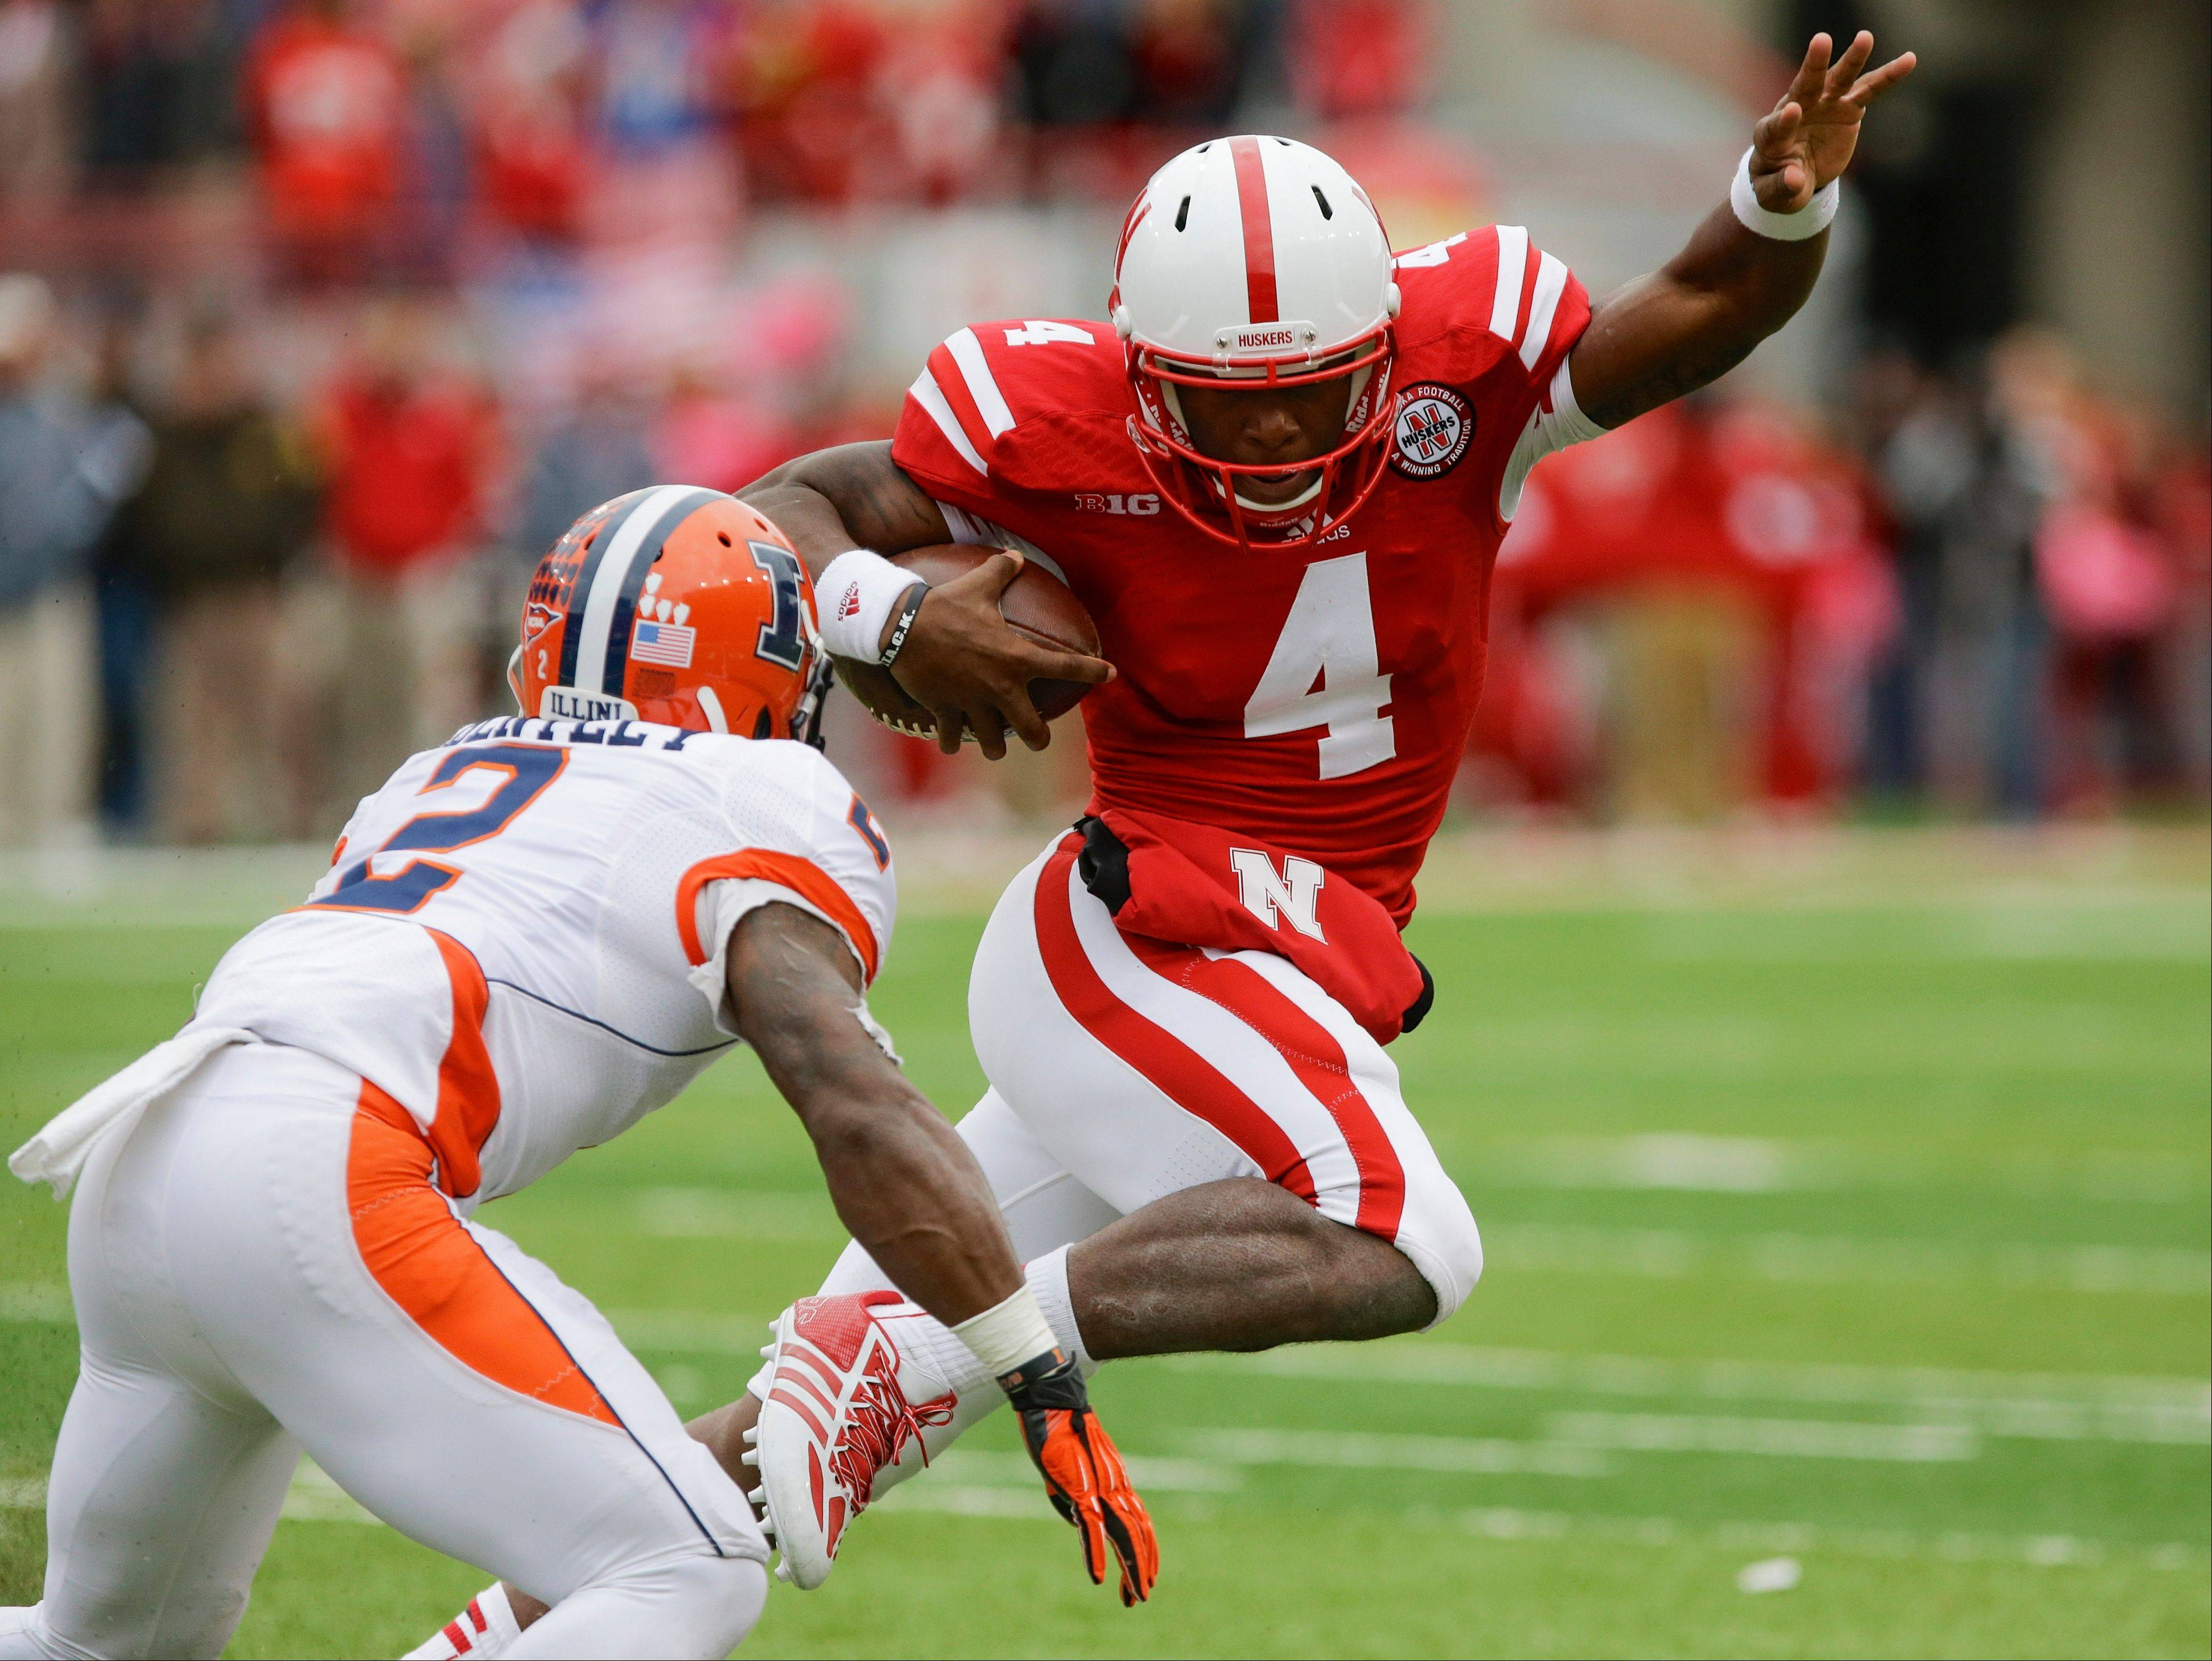 Nebraska quarterback Tommy Armstrong Jr. tries to outrun Illinois defensive back V�Angelo Bentley in the second half of Saturday�s game in Lincoln, Neb. Tackling was an issue for the Illini in the 39-19 loss.